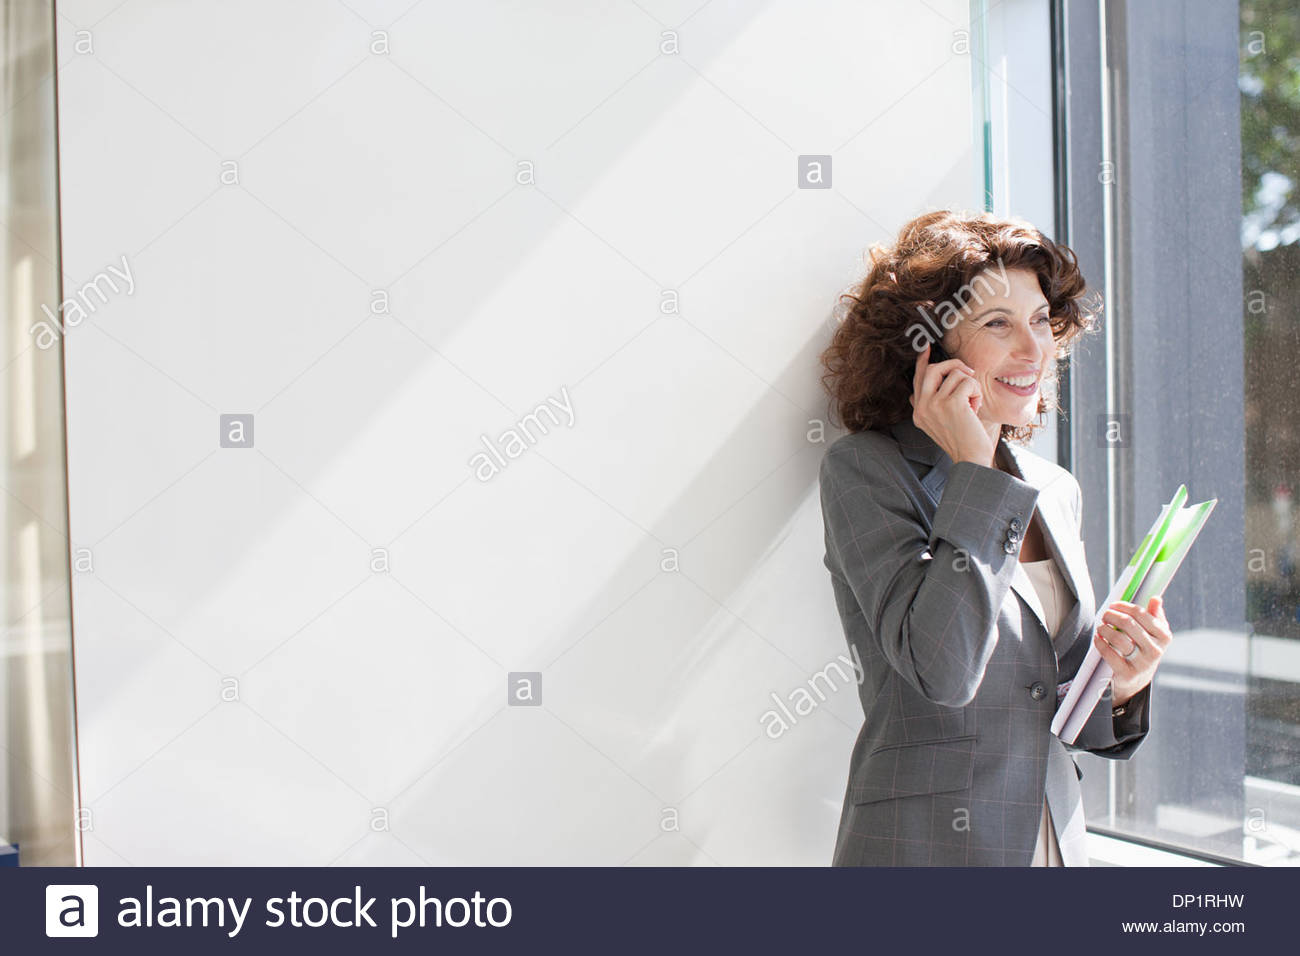 Businesswoman talking on cell phone by window - Stock Image